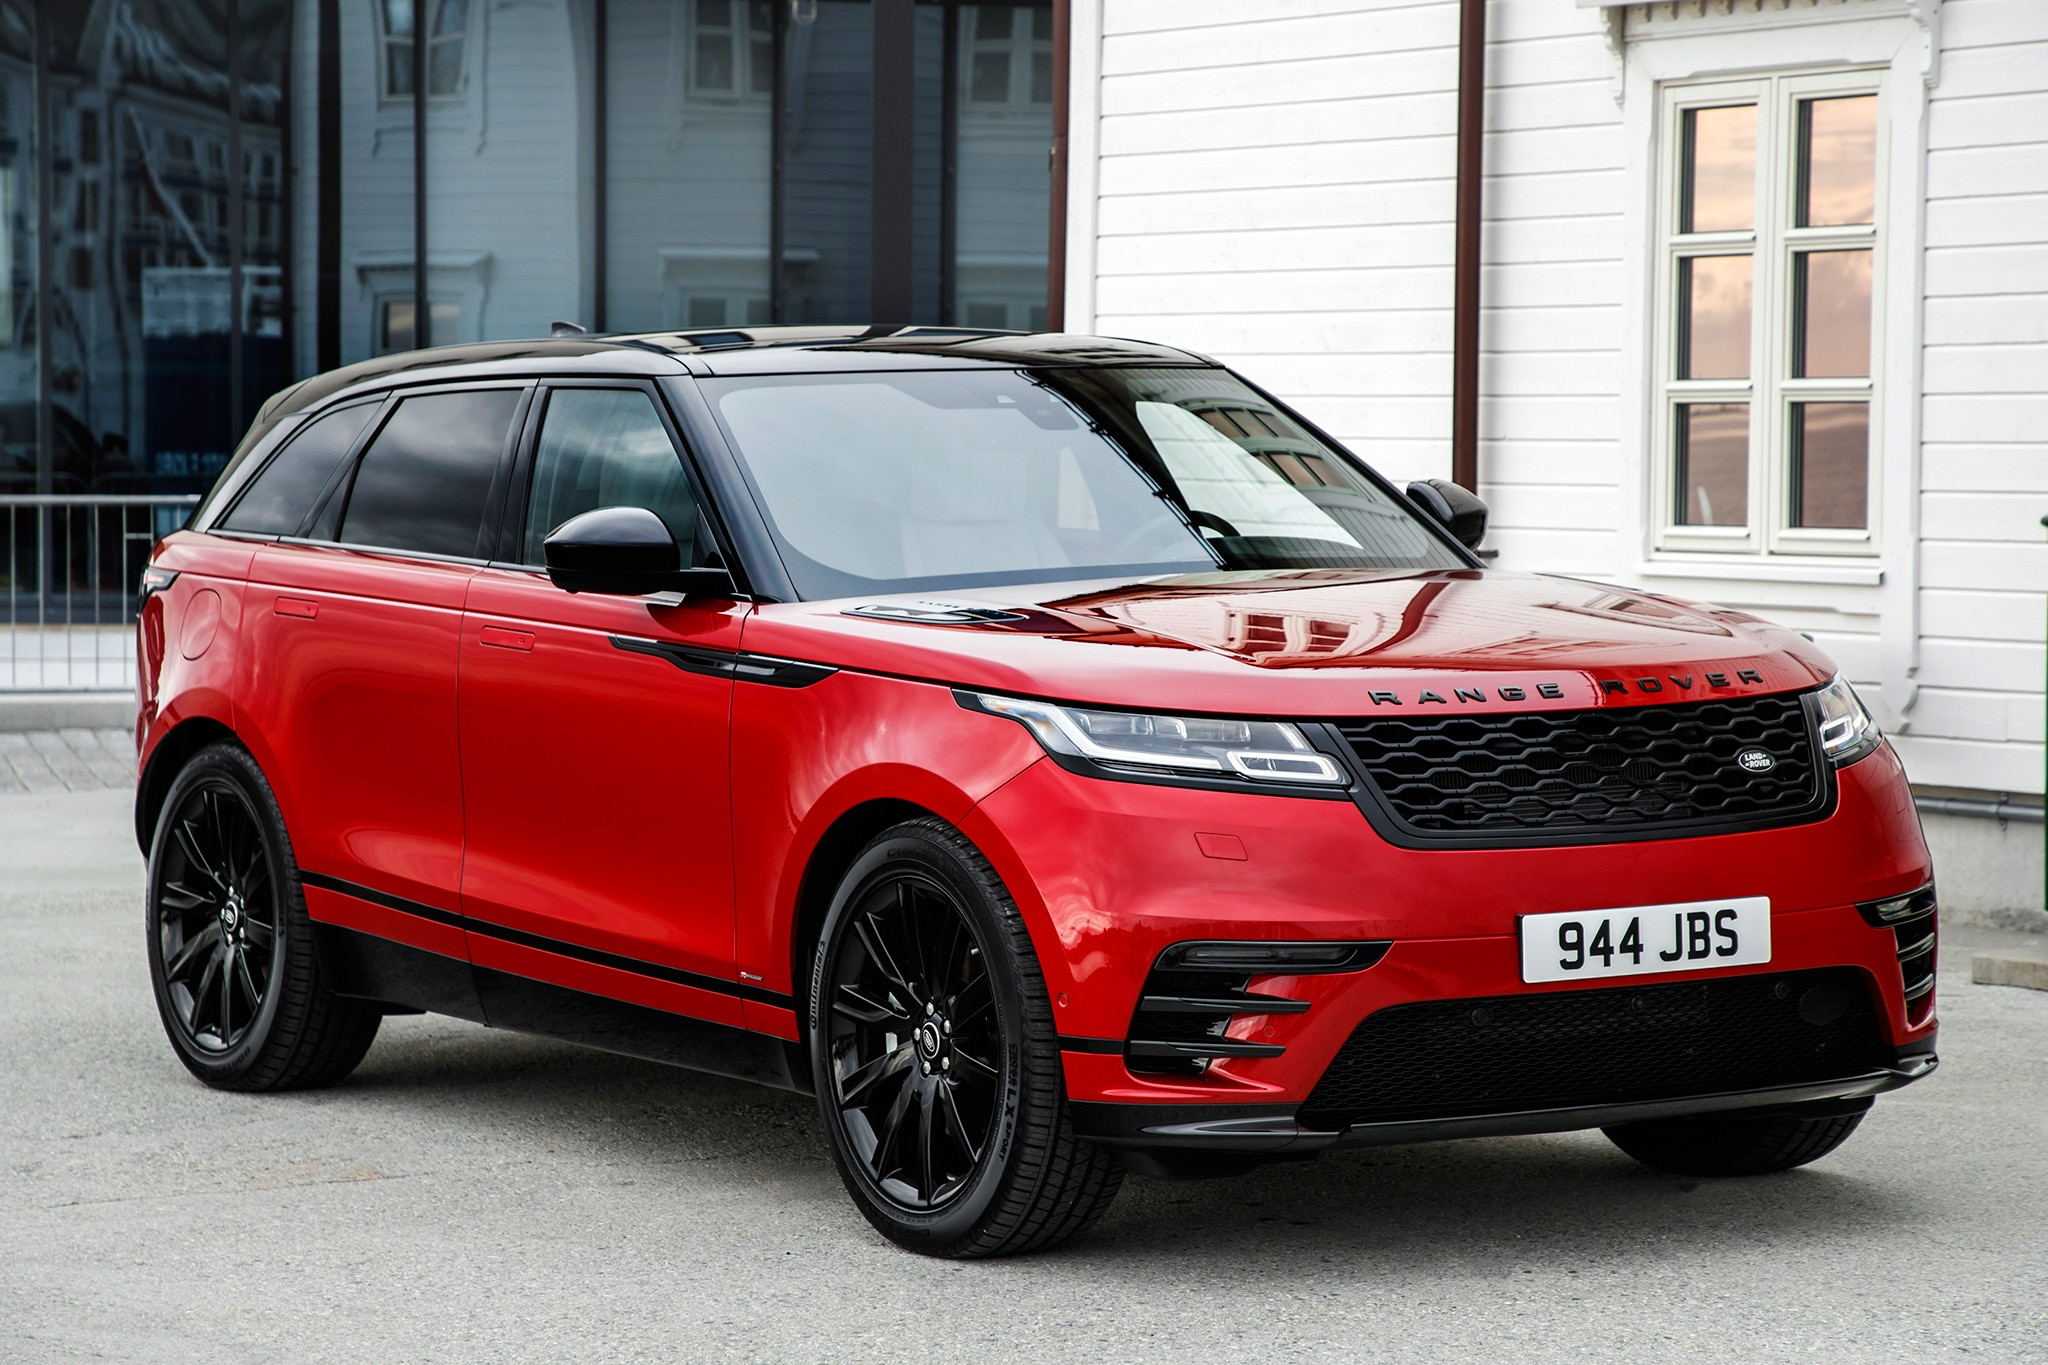 2018 range rover velar first drive review automobile magazine. Black Bedroom Furniture Sets. Home Design Ideas